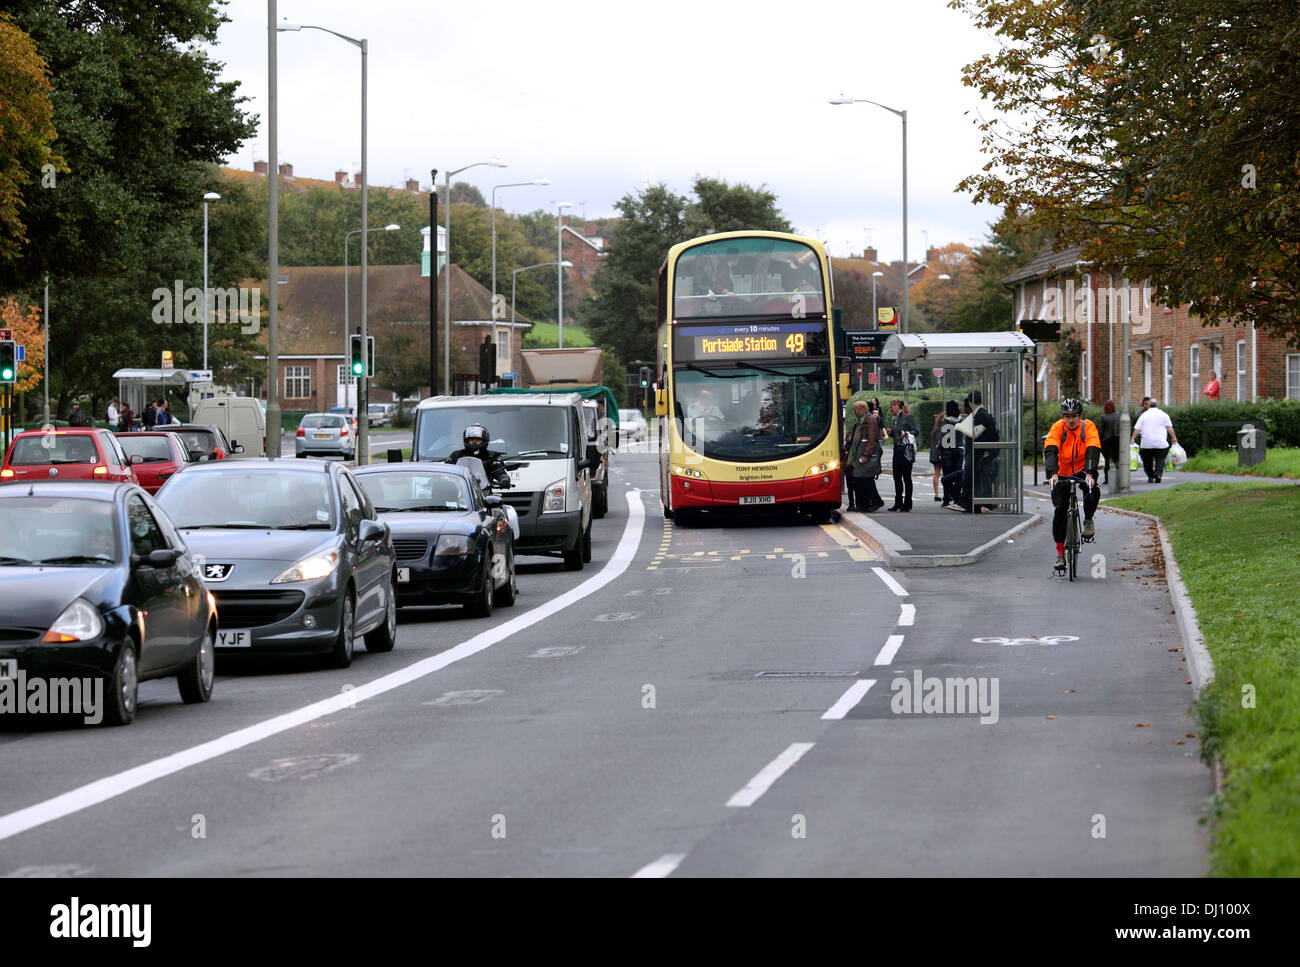 Bus lane and separate cycle lane,  Lewes Road, Brighton. The bus stop is positioned between the bus lane and cycle lane. - Stock Image